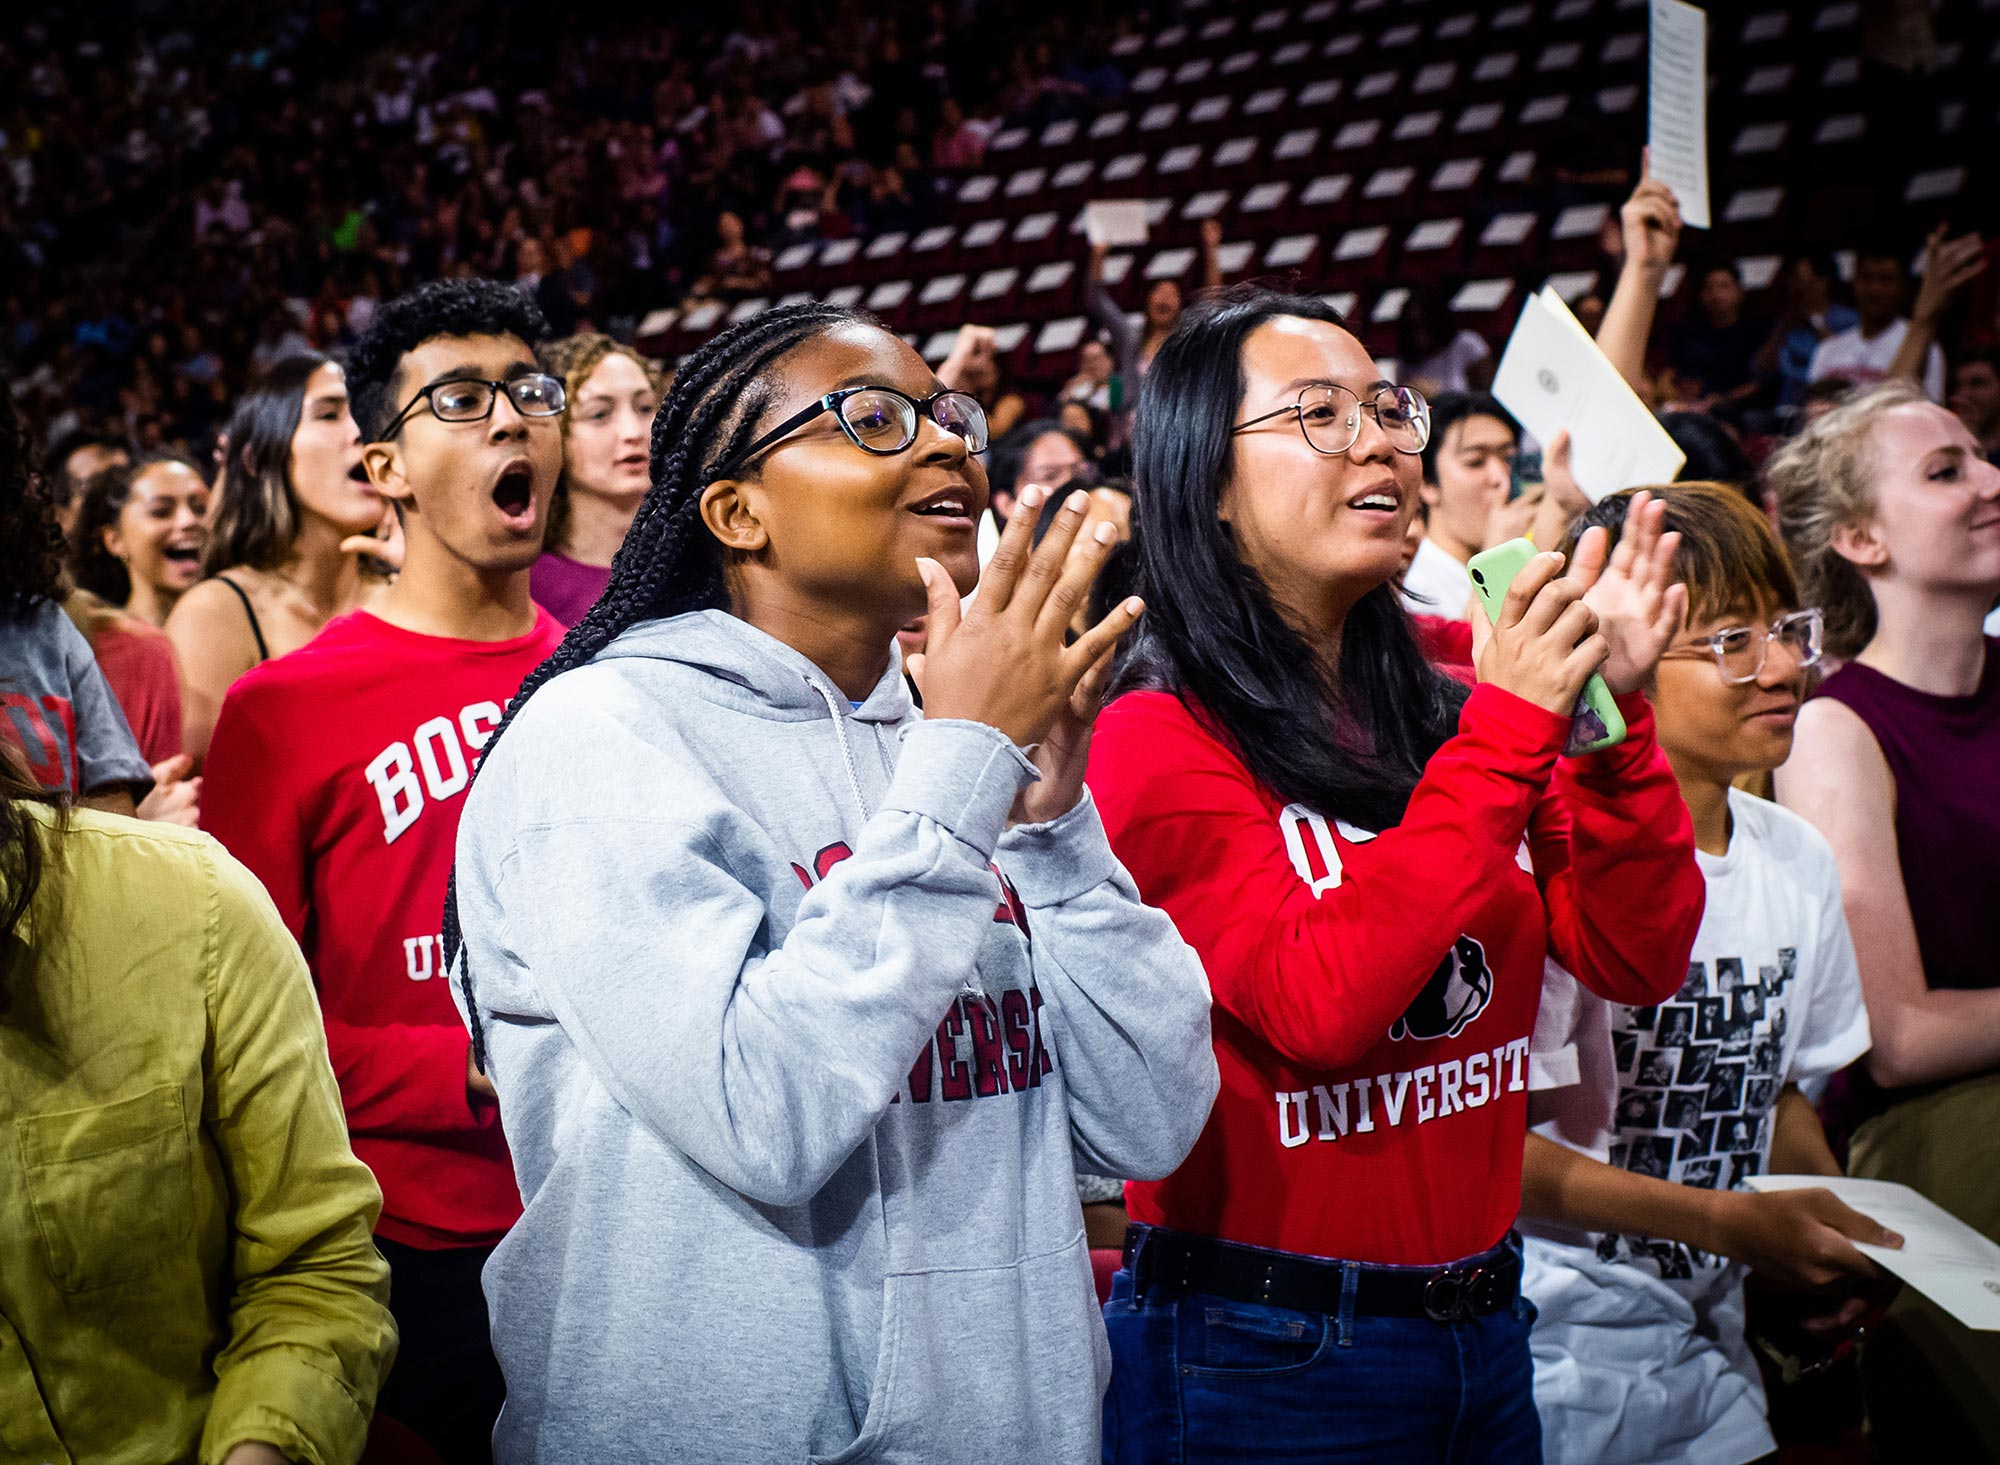 Students from the Boston University Class of 2023 cheer during the Matriculation Ceremony, Sunday, September 1 at Agganis Arena.